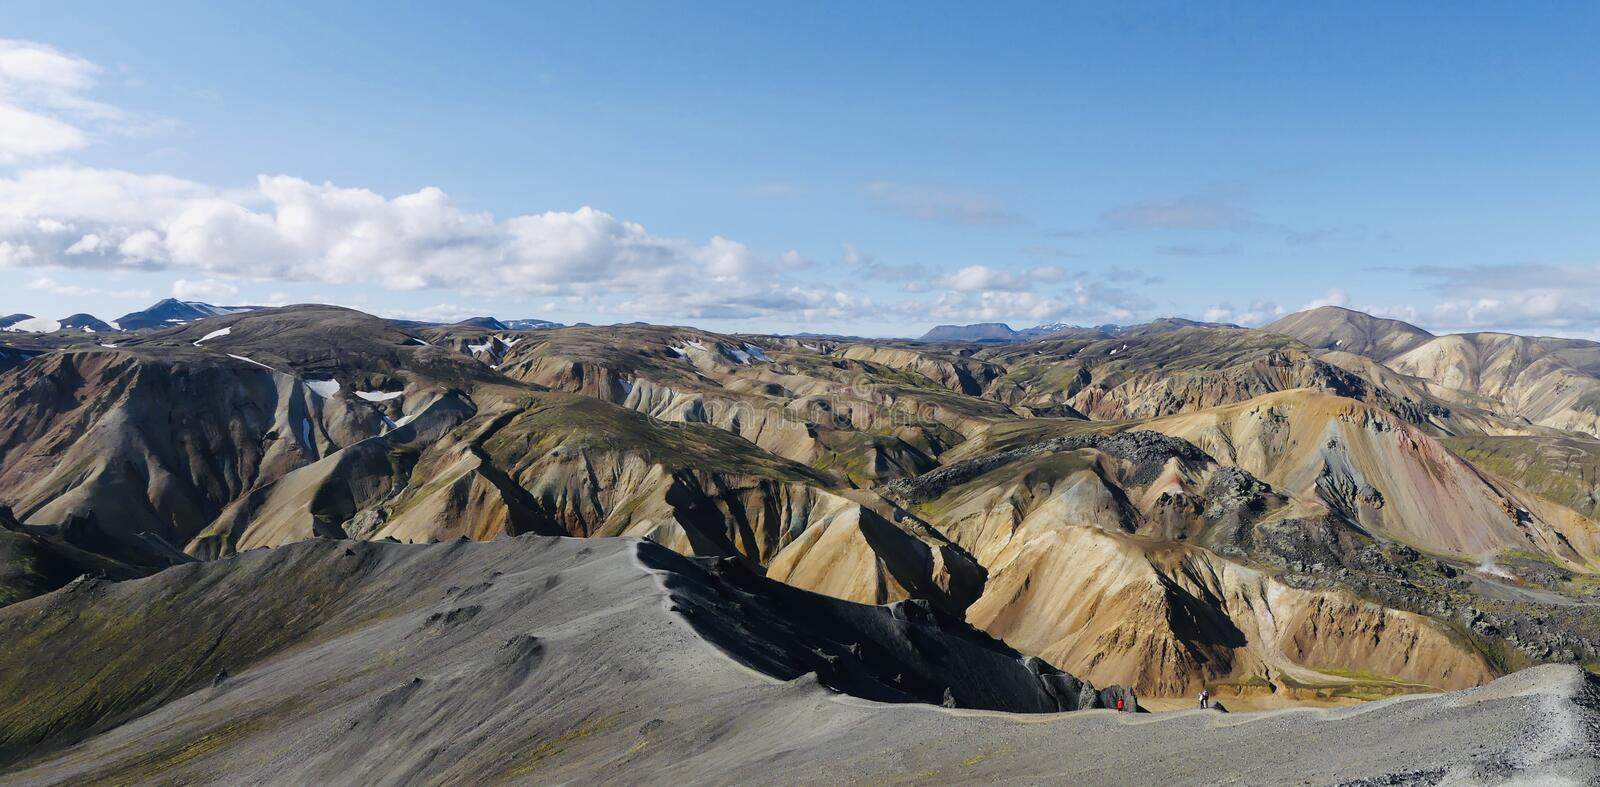 A part of Landmannalaugar rainbow mountains in Iceland. View from Blahnúkur to the most beautiful places in the world - Rainbow mountains stock photo